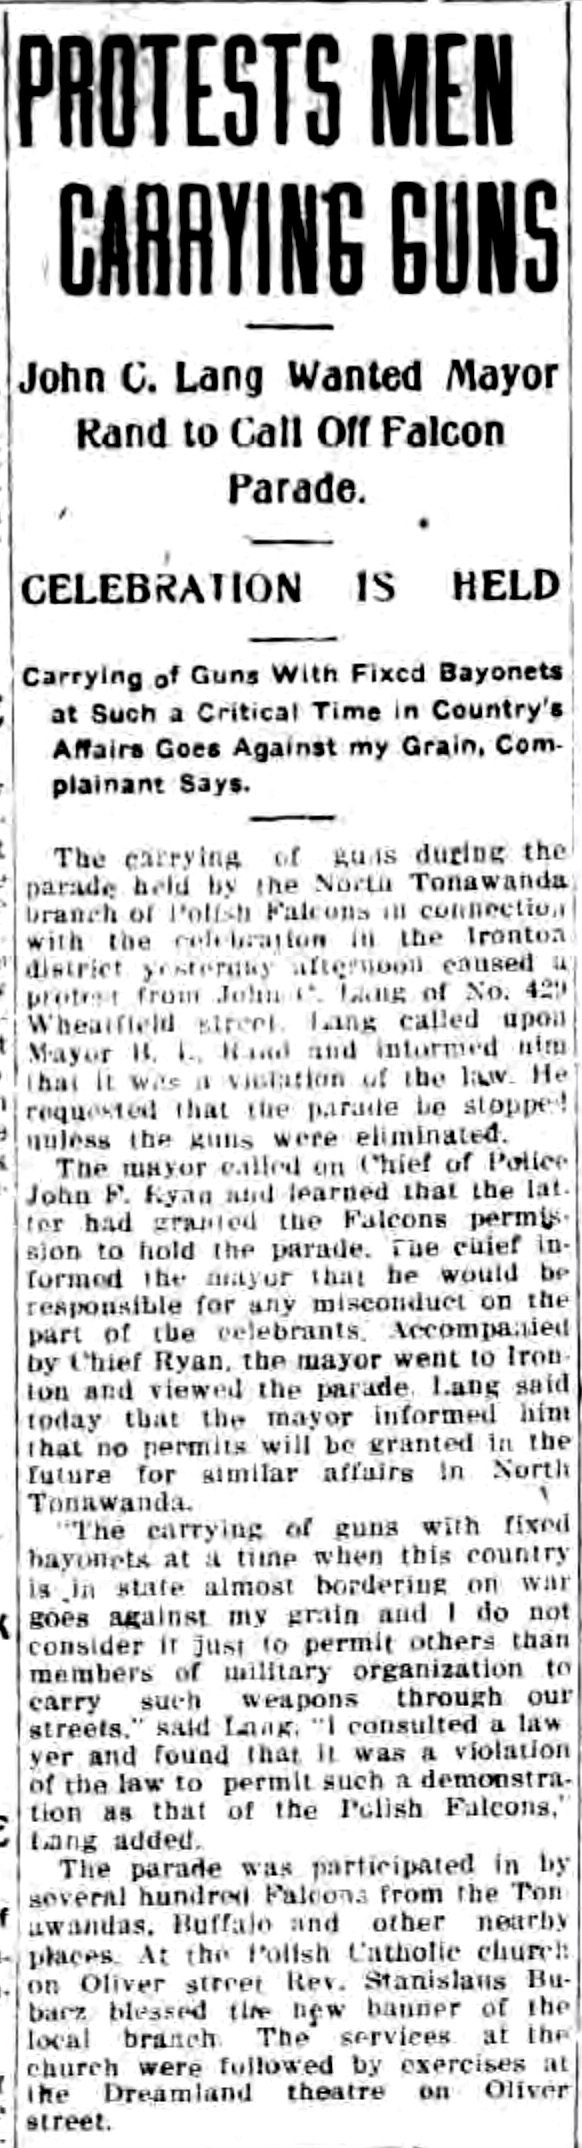 Protests men carrying guns, Ironton Polish Falcon parade, Dreamland, article (Tonawanda News, 1915-08-23).jpg